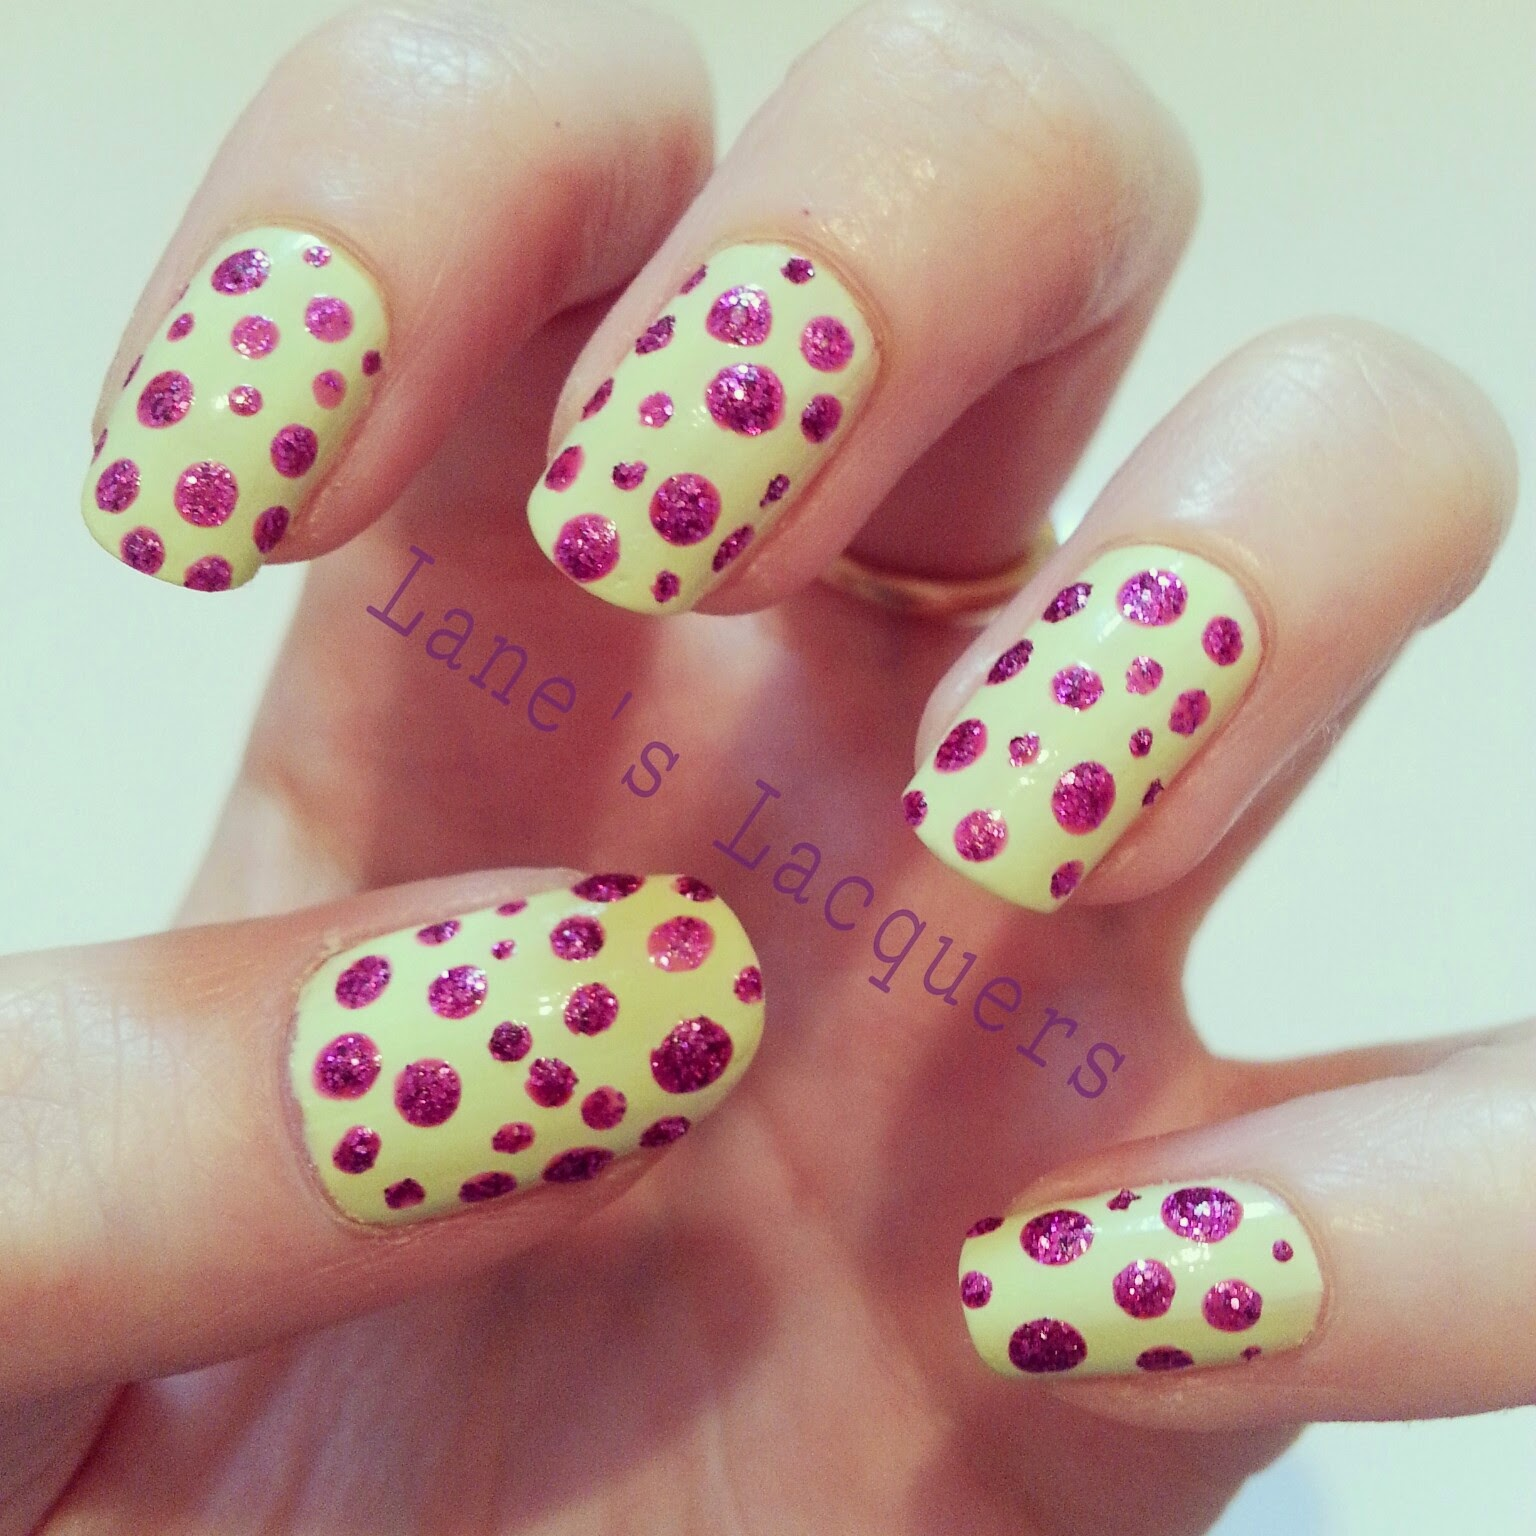 moyra-uk-glitter-pastel-dotticure-nails